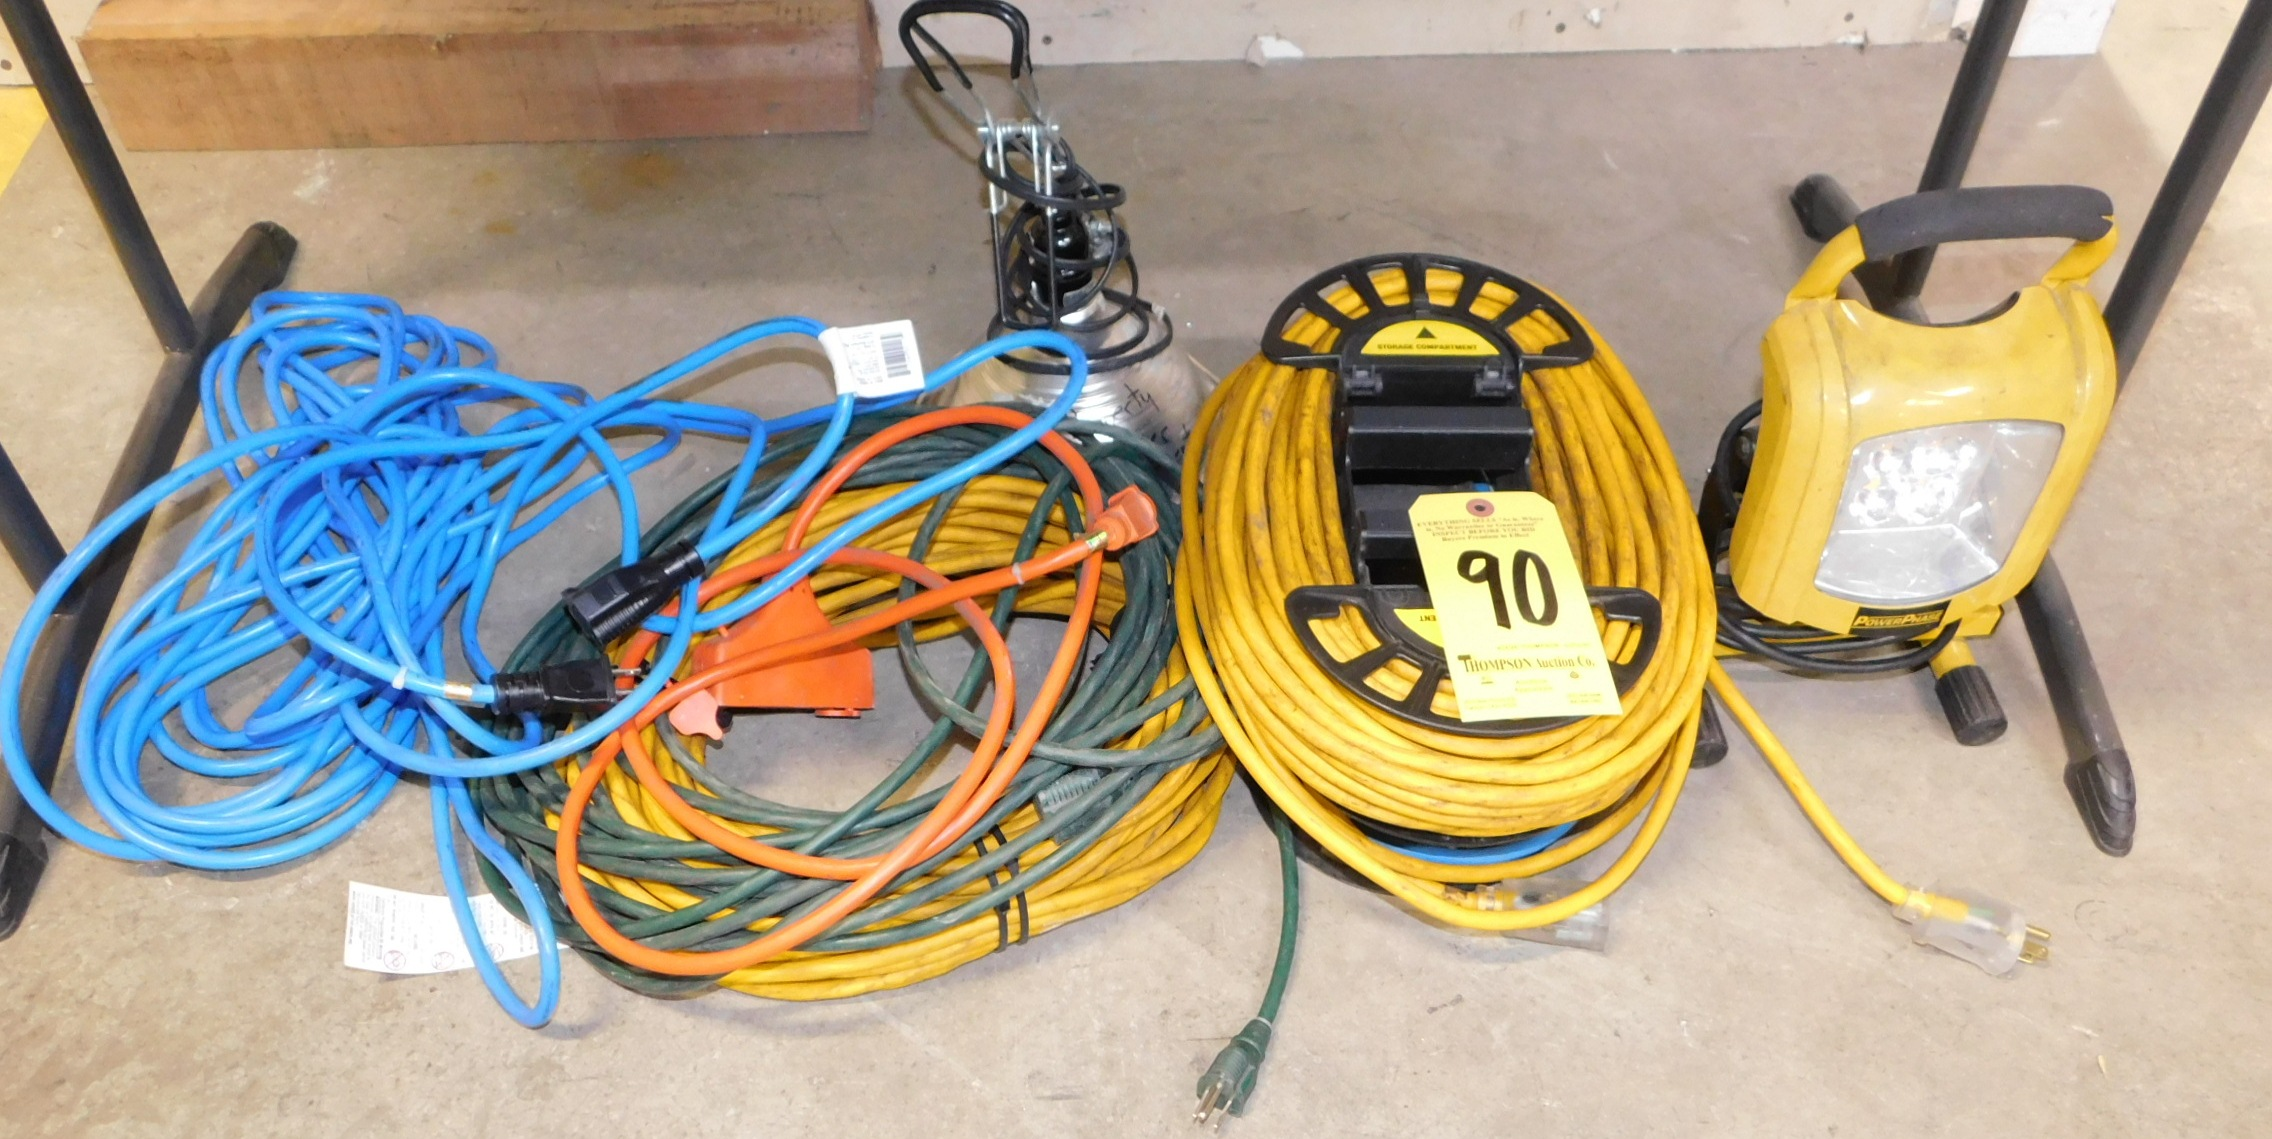 Extension Cords and Work Lights, Lot Location 3204 Olympia Dr. A, Lafayette, IN 47909